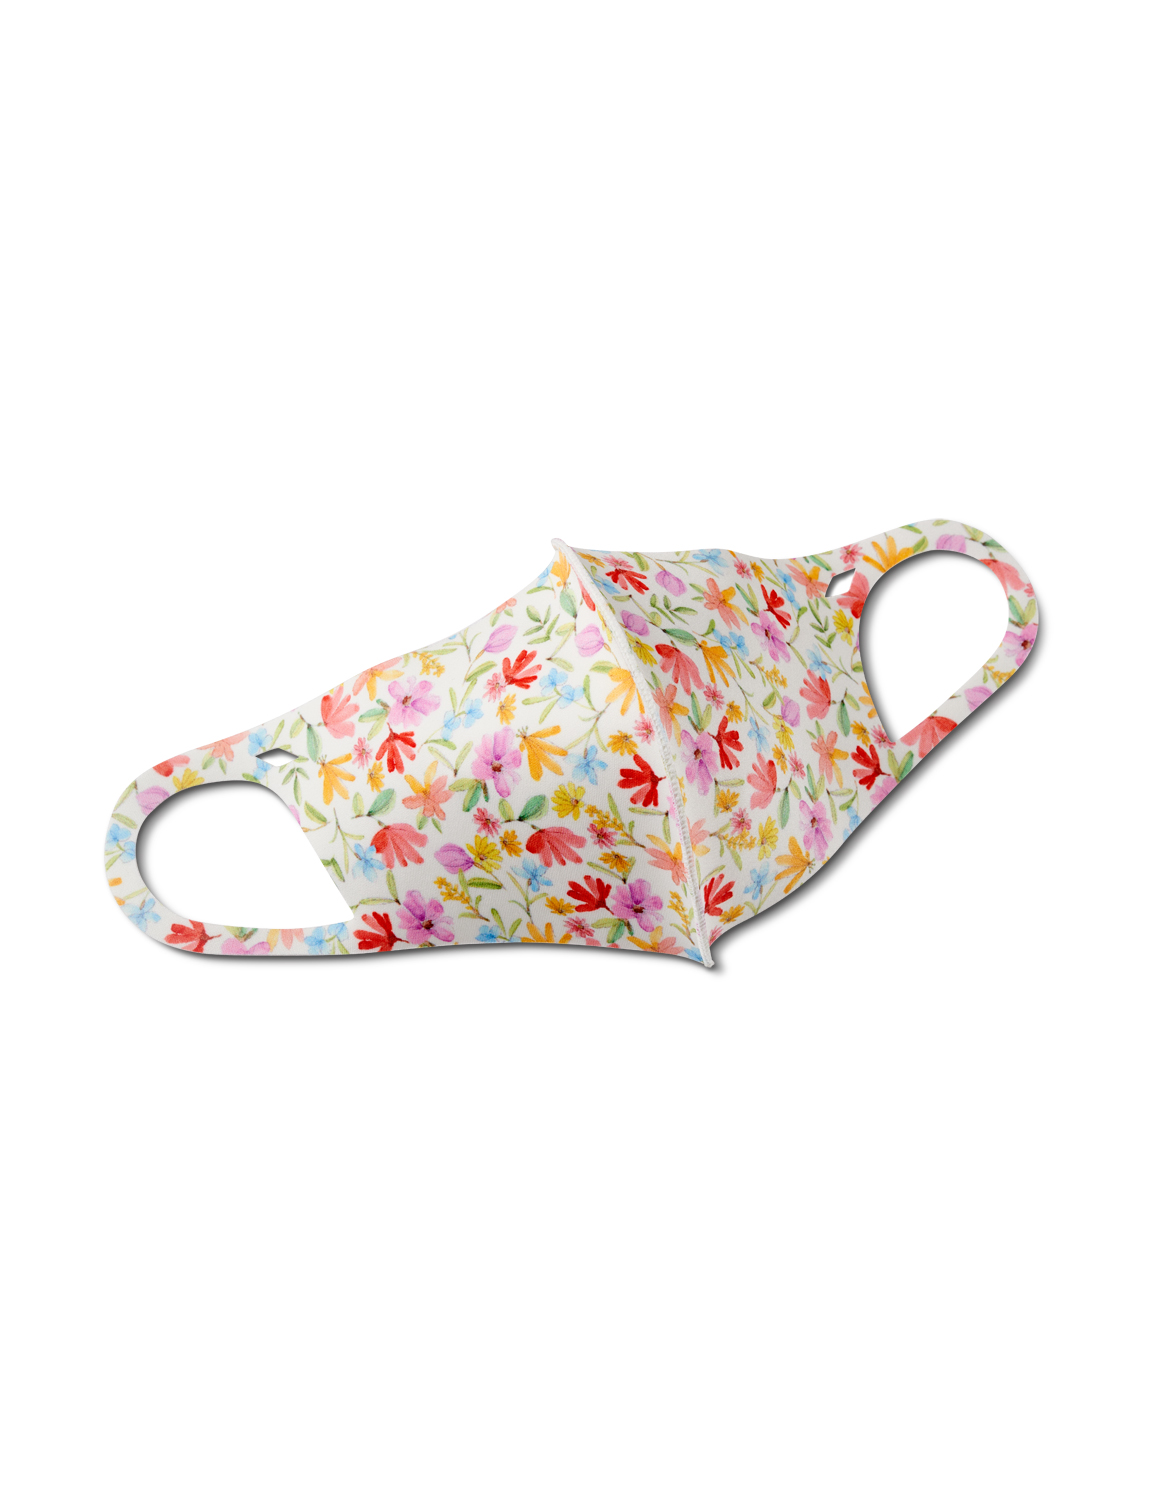 Floral Garden Anti-Bacterial Fashion Face Mask -Multi - Front